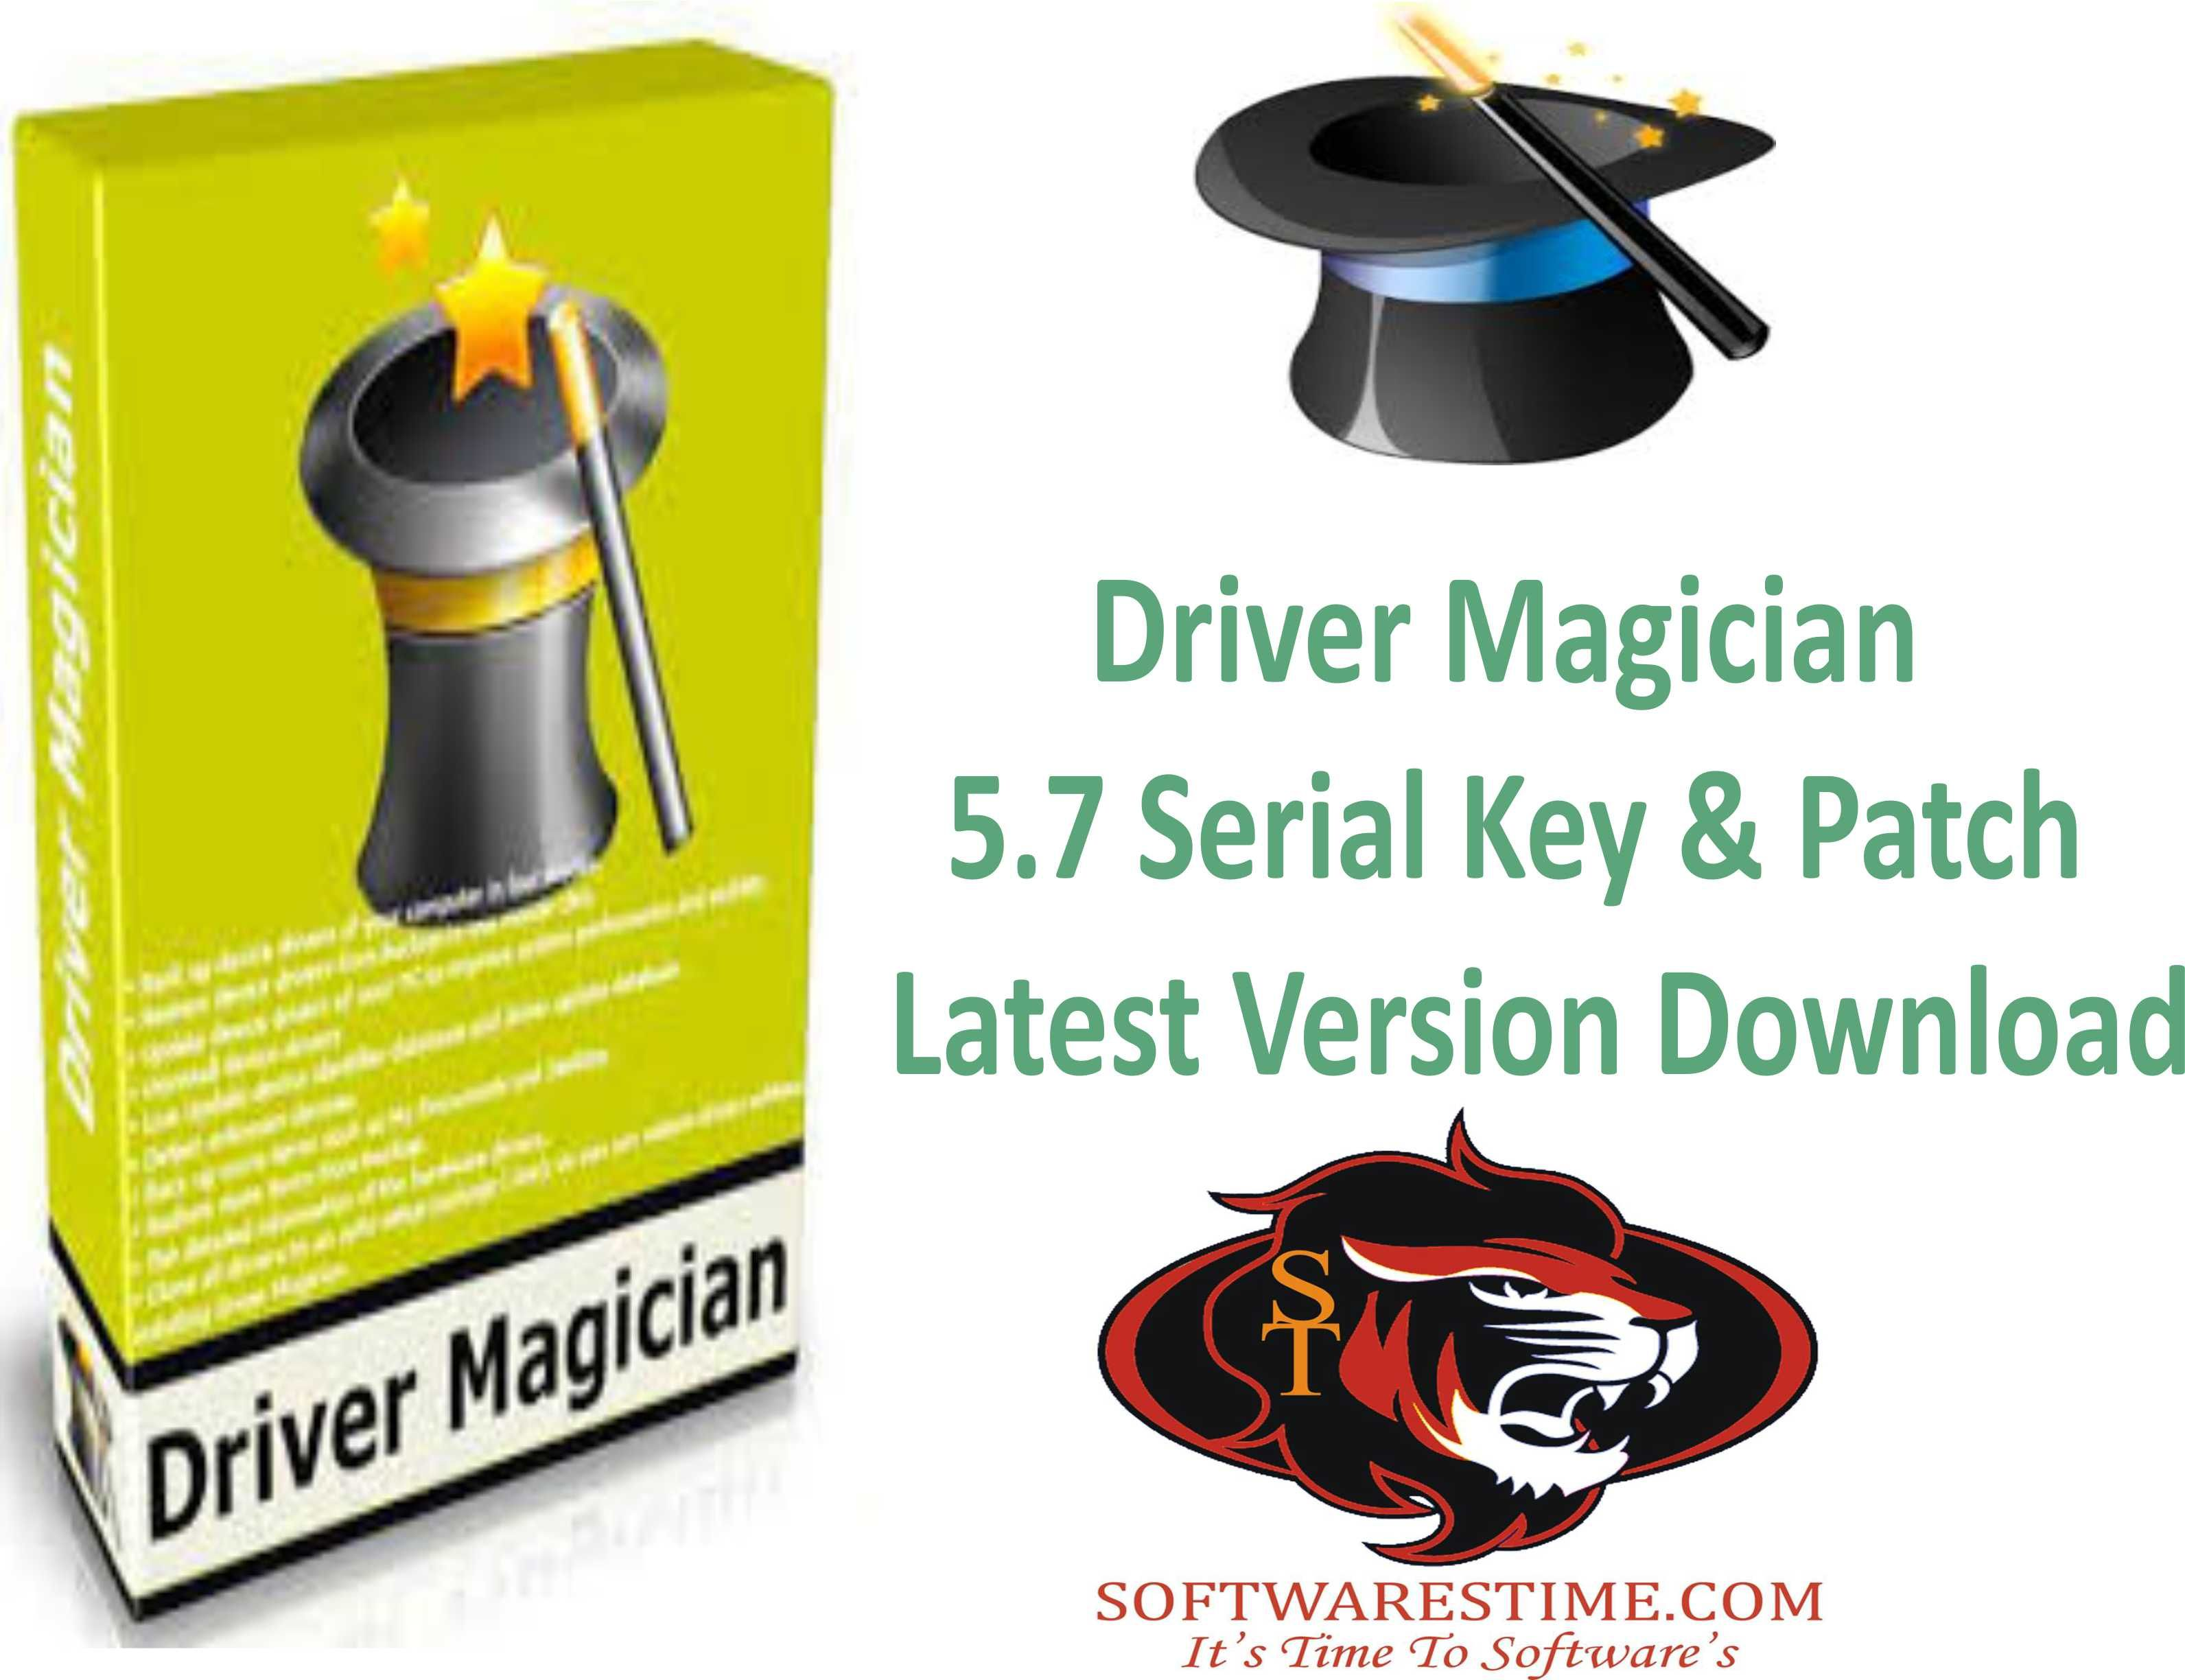 Driver Magician 5.7 Serial Key & Patch Latest Version